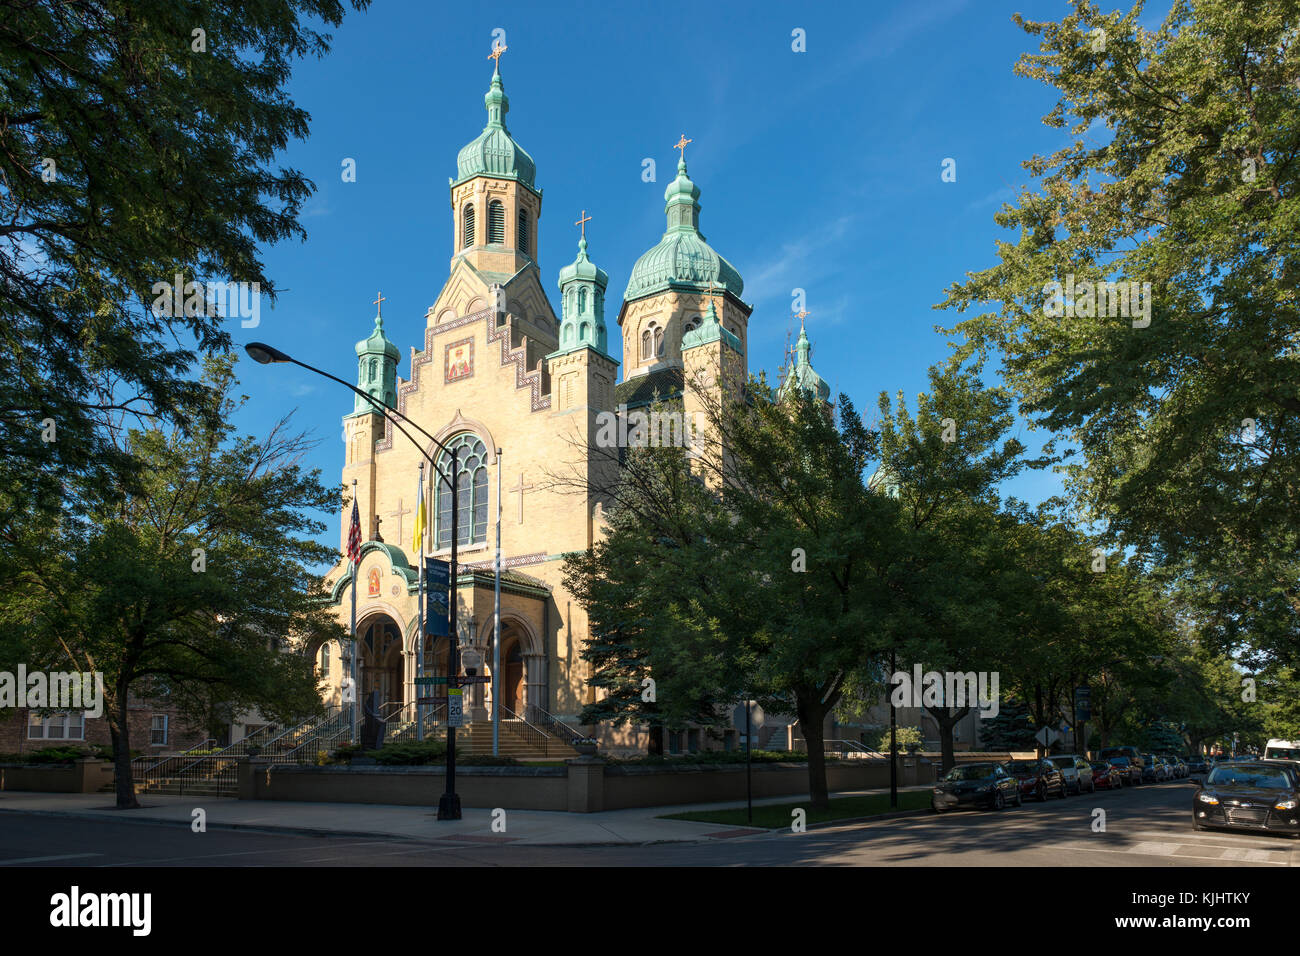 Saint Nicholas church in Chicago Ukrainian Village is an example of Byzantine-Slavonic architectural style. - Stock Image